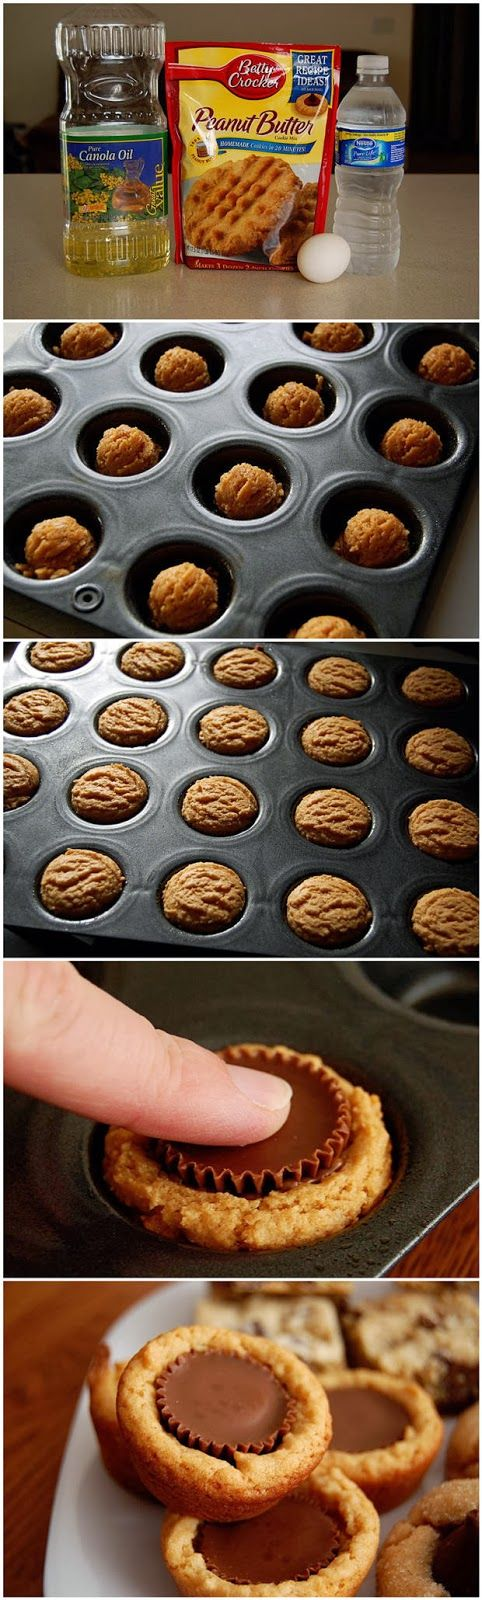 Reese's Peanut Butter Cup Cookies - My mother in-law makes these and they are AWESOME